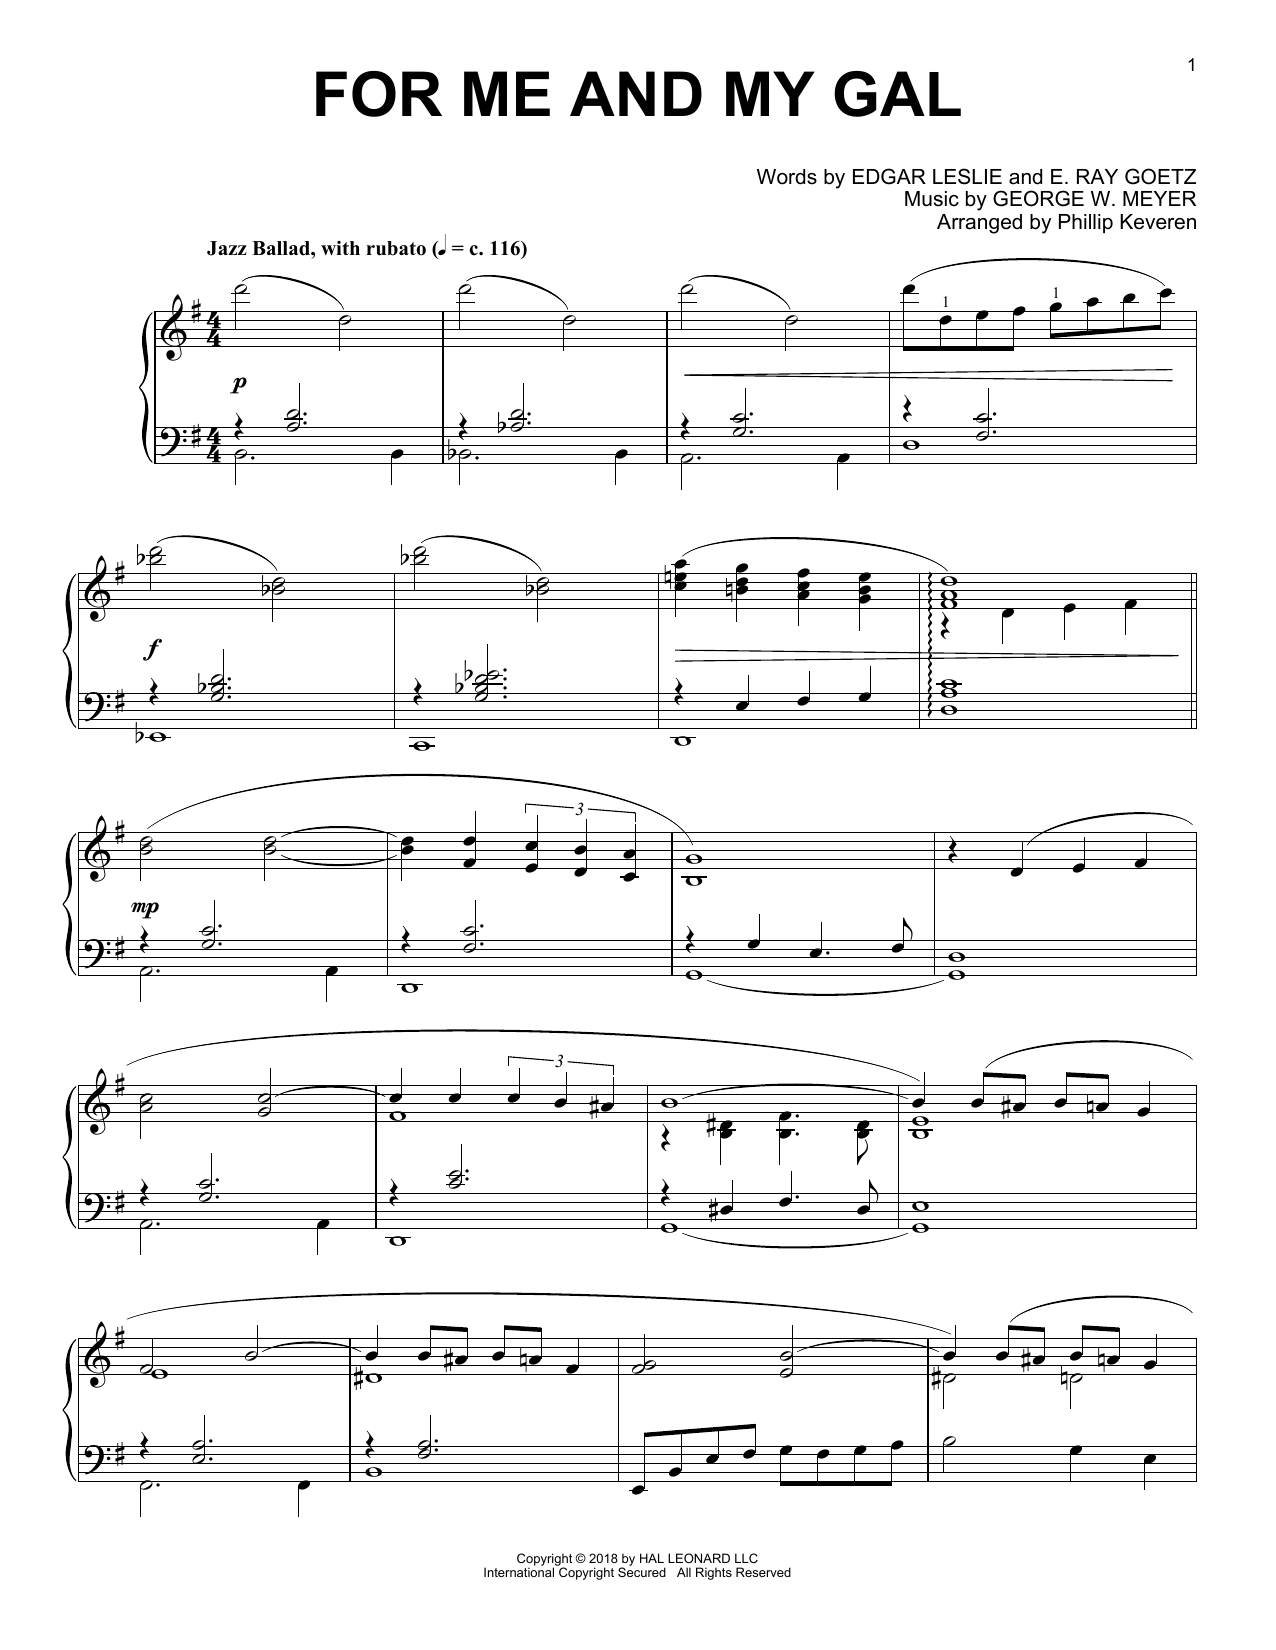 Download E. Ray Goetz 'For Me And My Gal (arr. Phillip Keveren)' Digital Sheet Music Notes & Chords and start playing in minutes